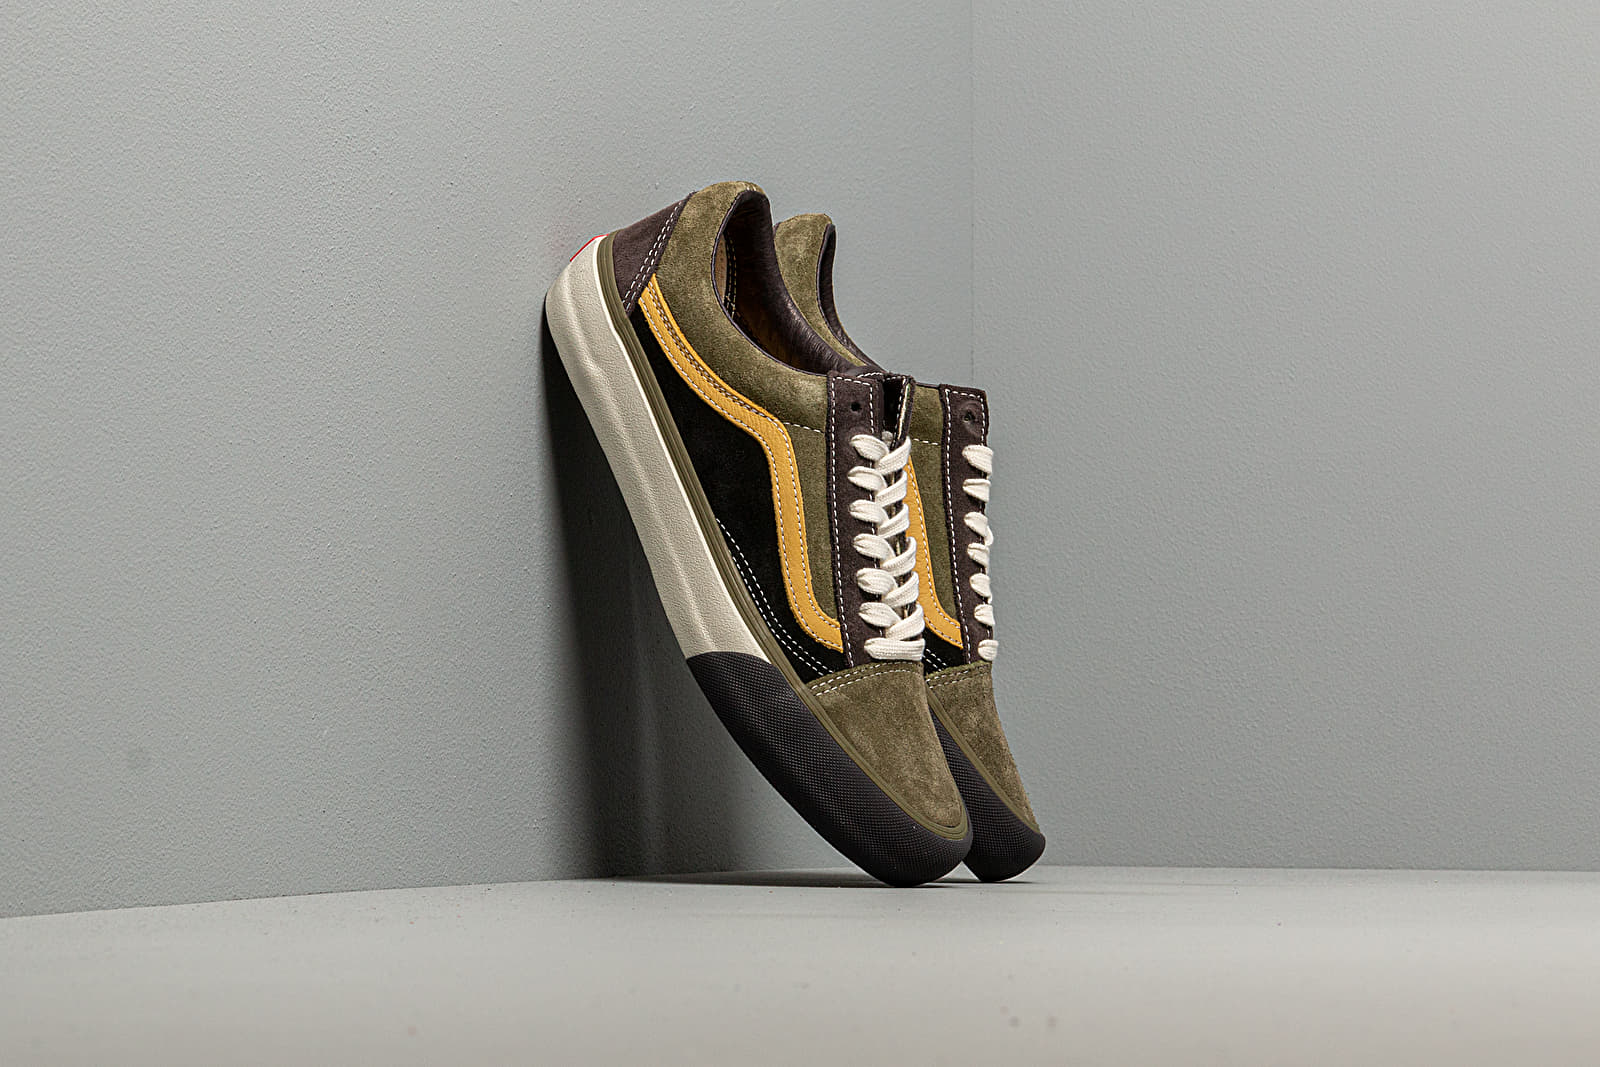 Vans Old Skool VLT LX (Suede/Leather)